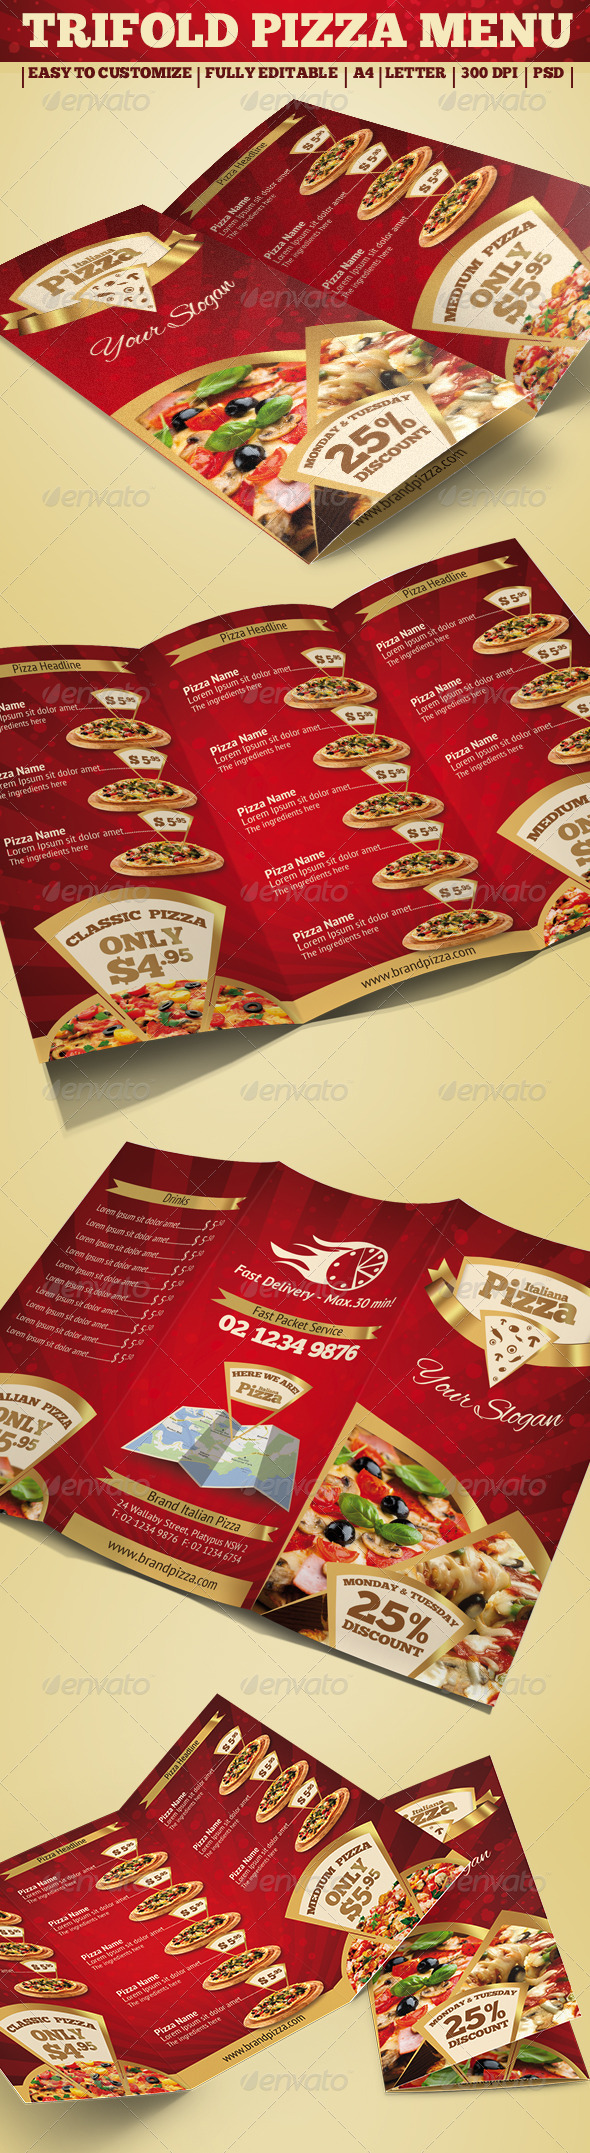 Trifold Brochure - Pizza Menu - Food Menus Print Templates